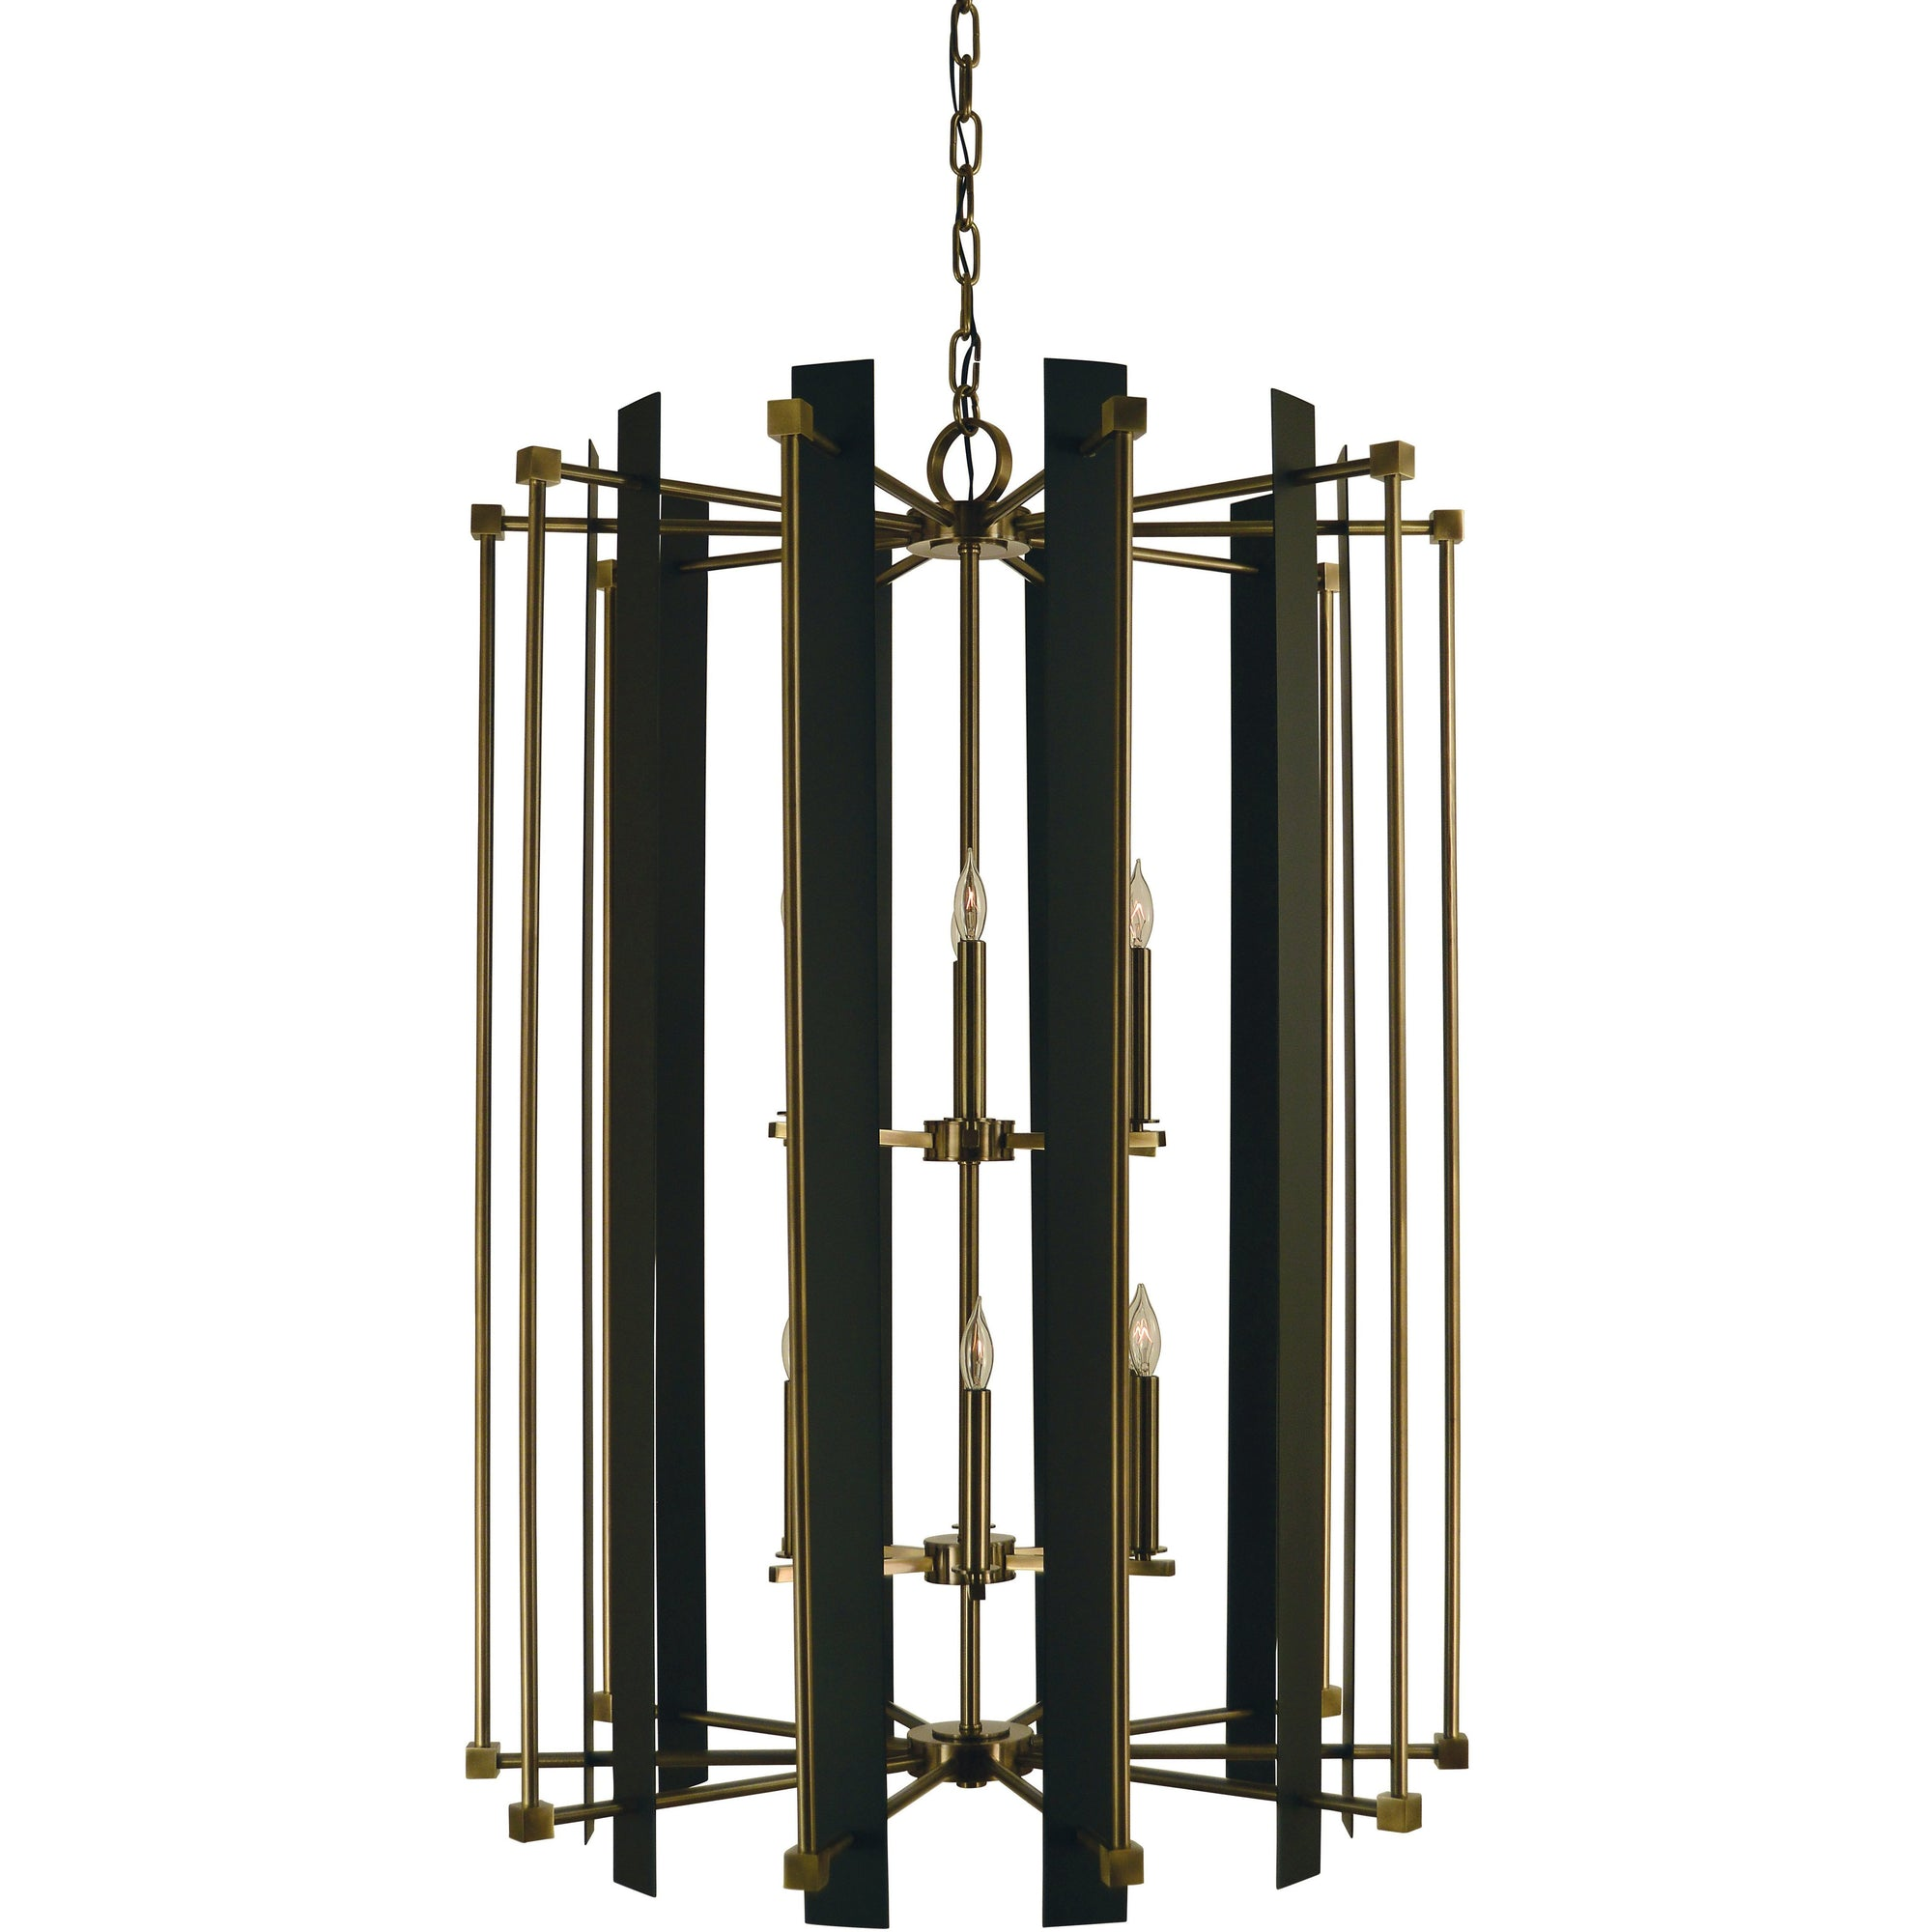 Framburg Foyer Chandeliers Antique Brass with Matte Black 12-Light Antique Brass/Matte Black Louvre Chandelier by Framburg 4806